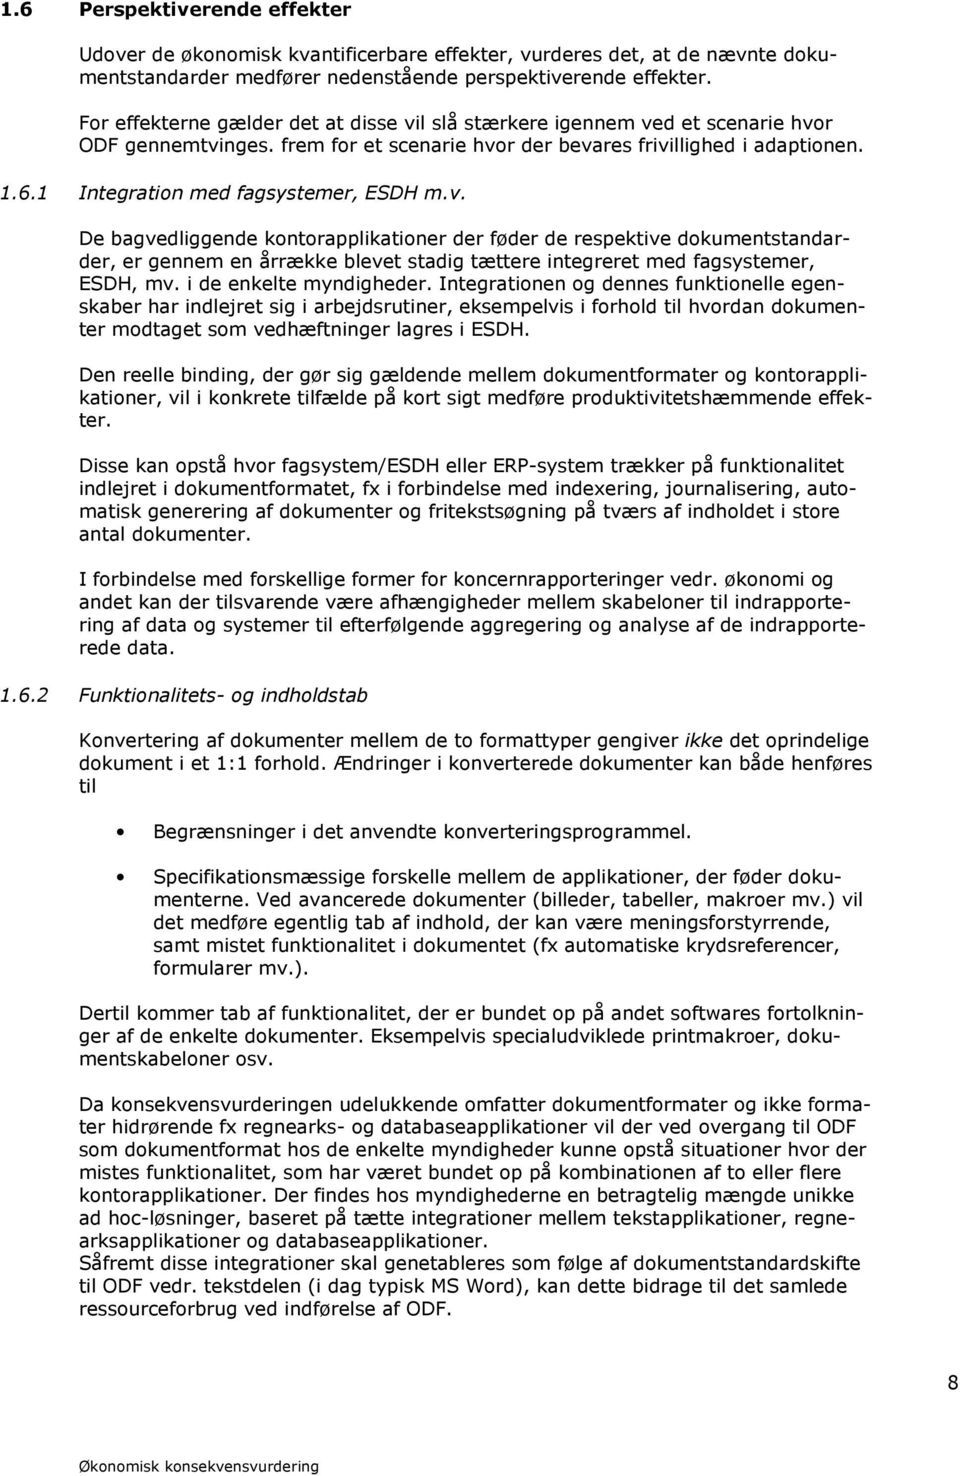 1 Integration med fagsystemer, ESDH m.v.